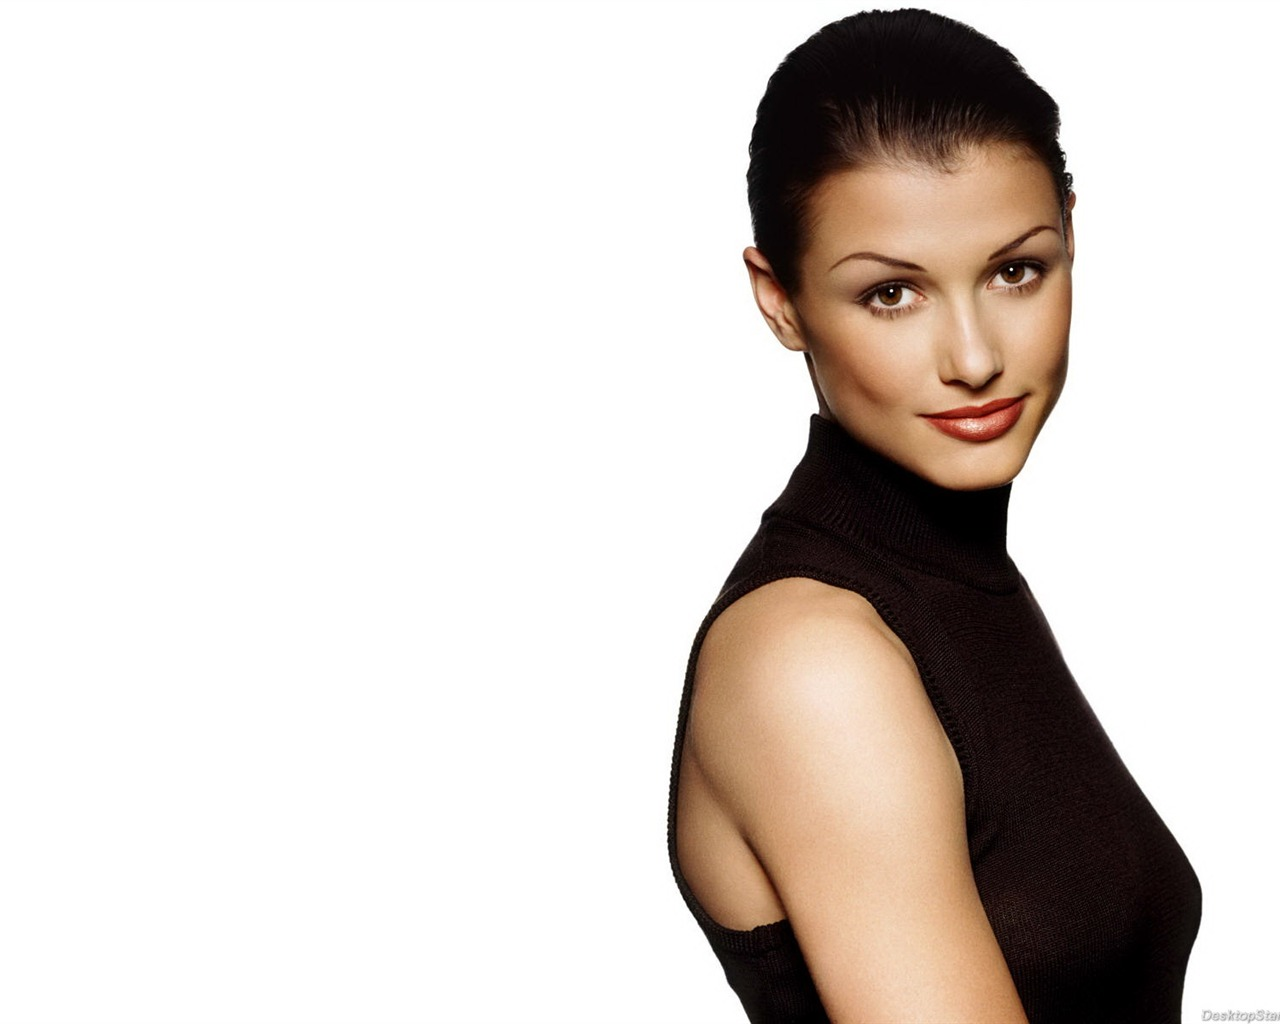 Bridget Moynahan #012 - 1280x1024 Wallpapers Pictures Photos Images